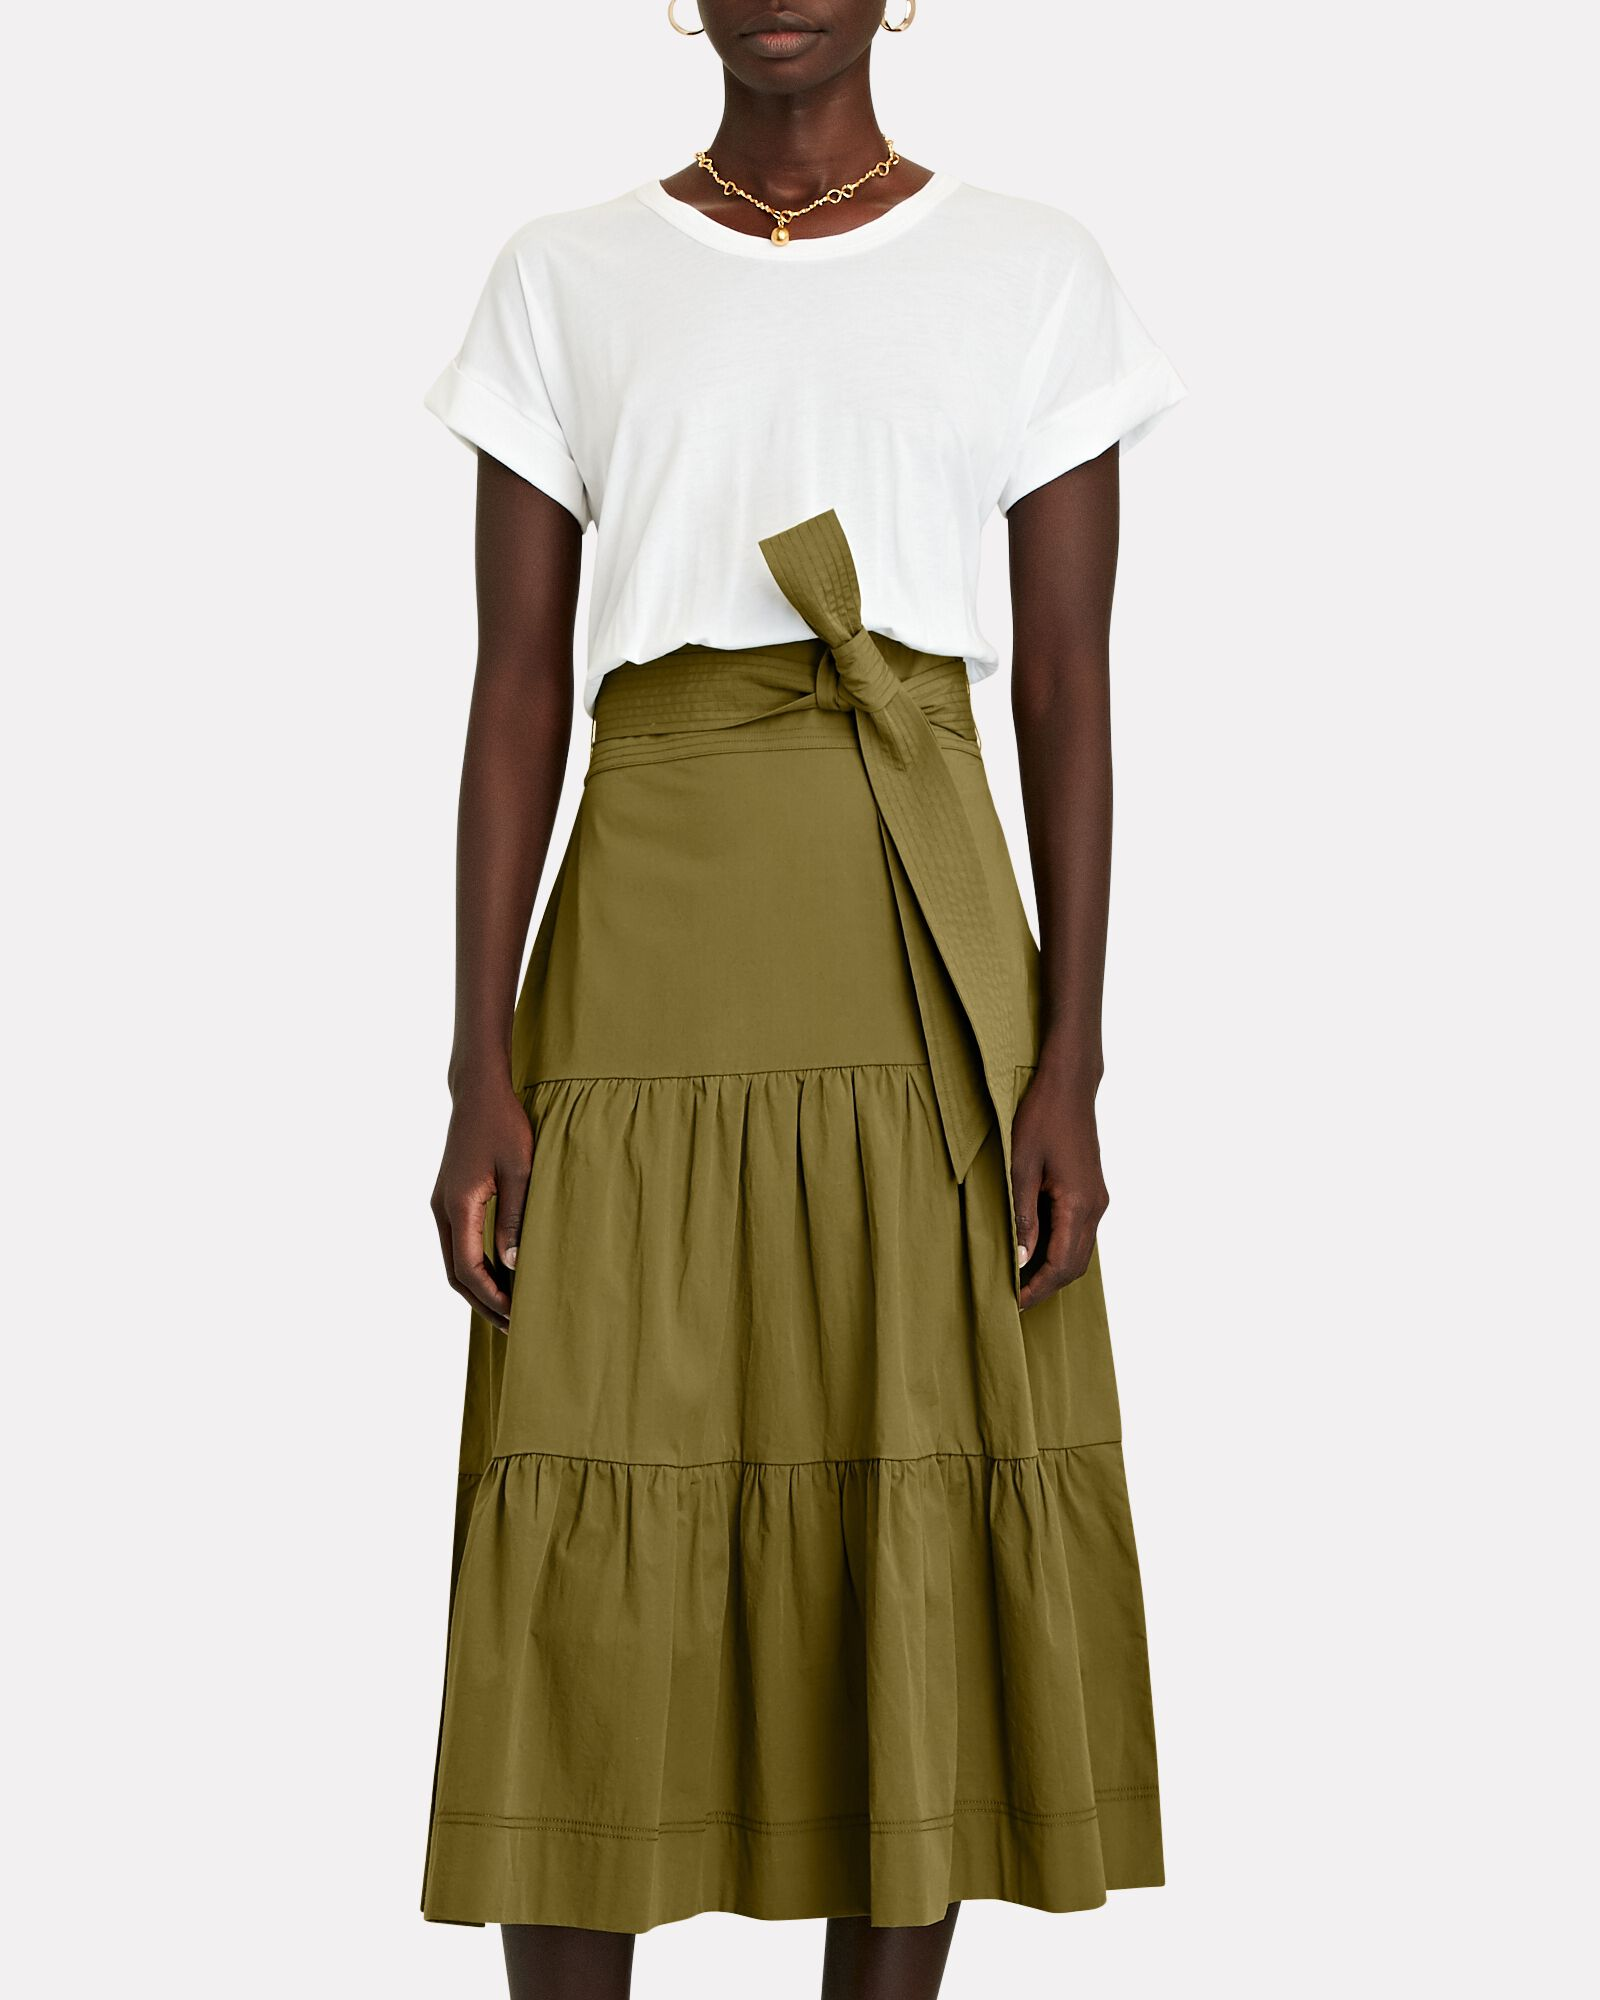 Trail Mixed Media Midi Dress, WHITE/GREEN, hi-res